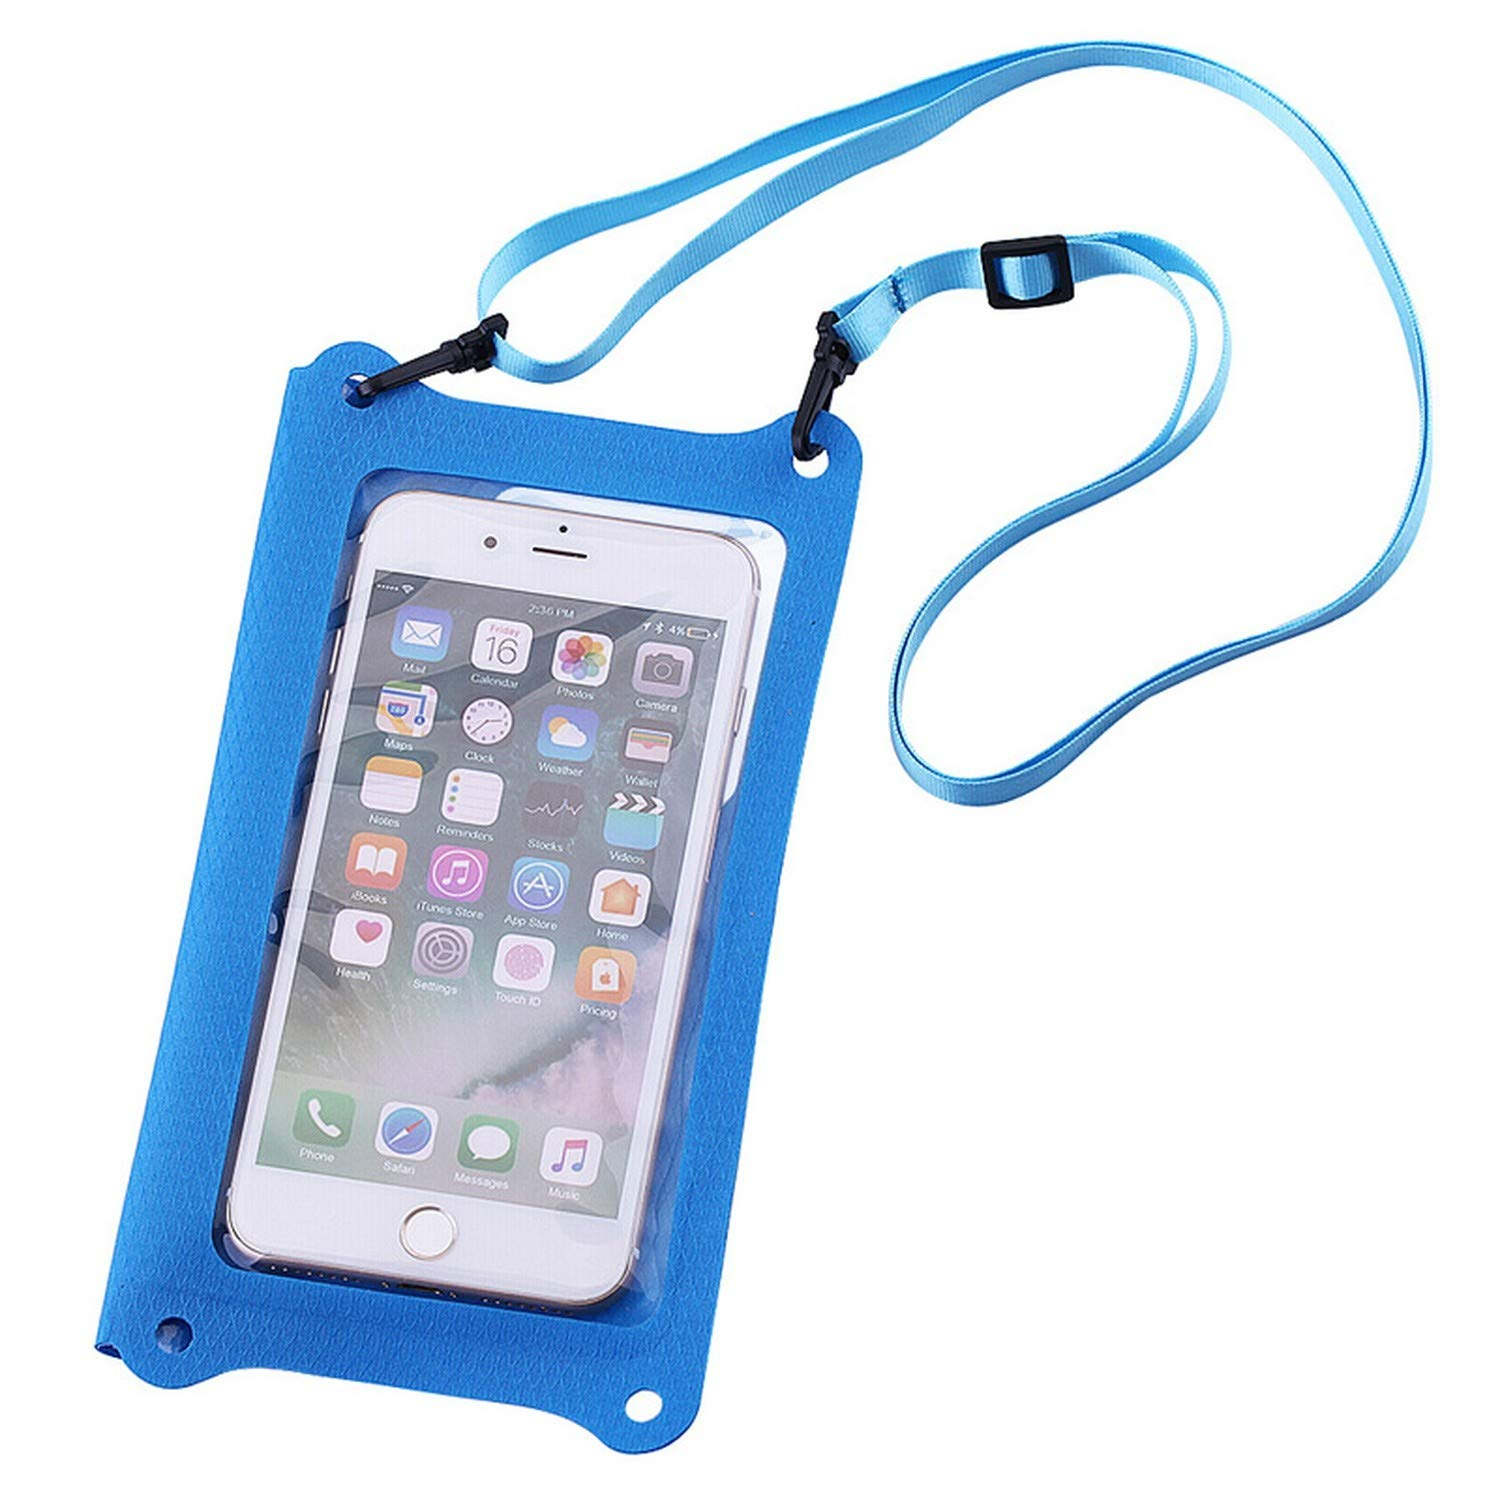 Waterproof Touch Screen Mobile Phone Bag Outdoor Swimming Pouch Cell Phones Portable Double-Velcro Swimming Diving Bag,Blue by I'll NEVER BE HER